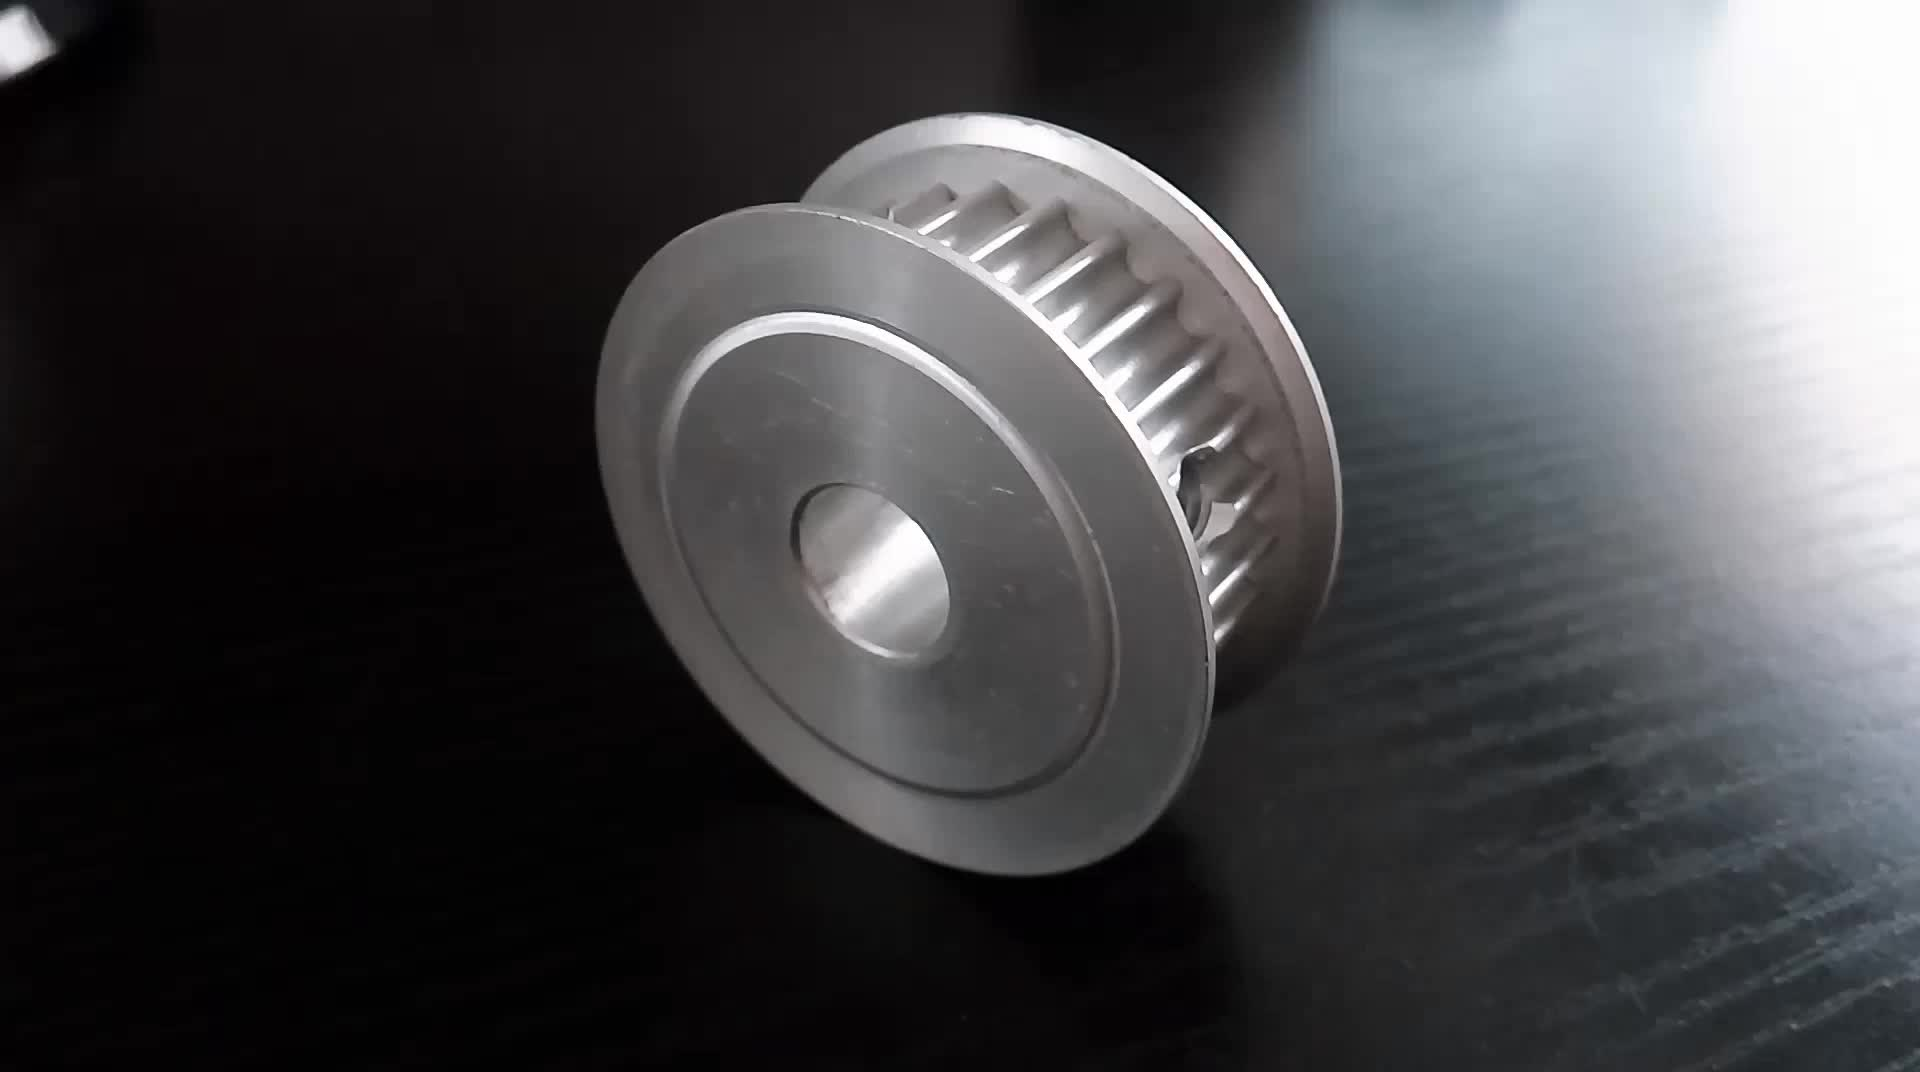 Timing Belt Pulley At10 : Htd m cnc aluminum timing belt pulleys gt t at